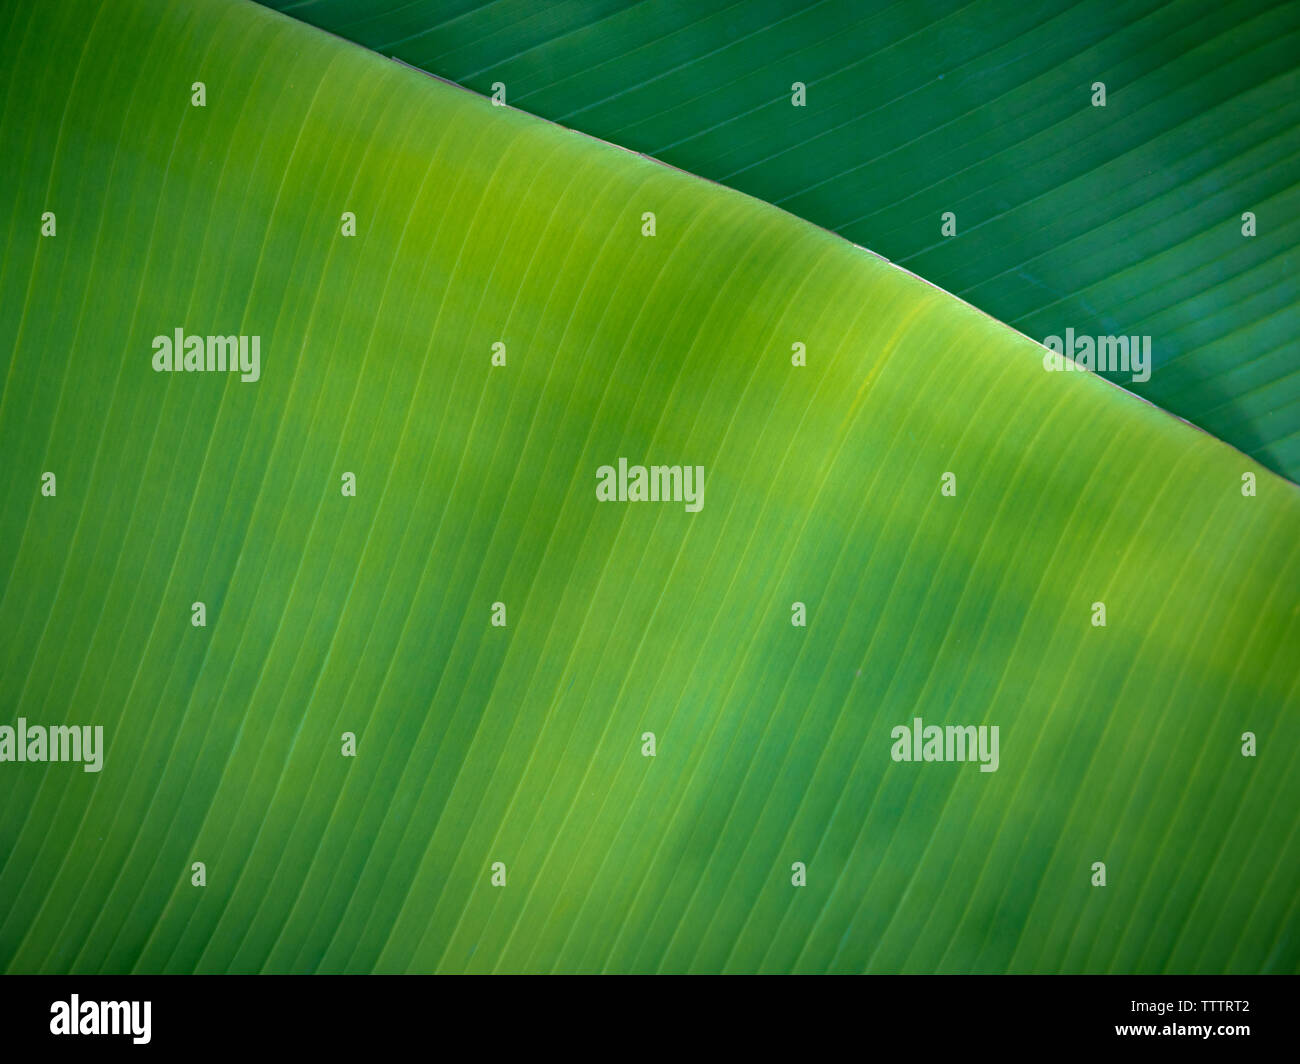 Tropical Banana Leaves Natural Green Background Natural Banana Leaves Can Be Used In Many Ways In Everyday Life Stock Photo Alamy As animal and insect life does not need to expend energy keeping warm, it can spend more energy on reproduction and reproduce with greater frequency. alamy